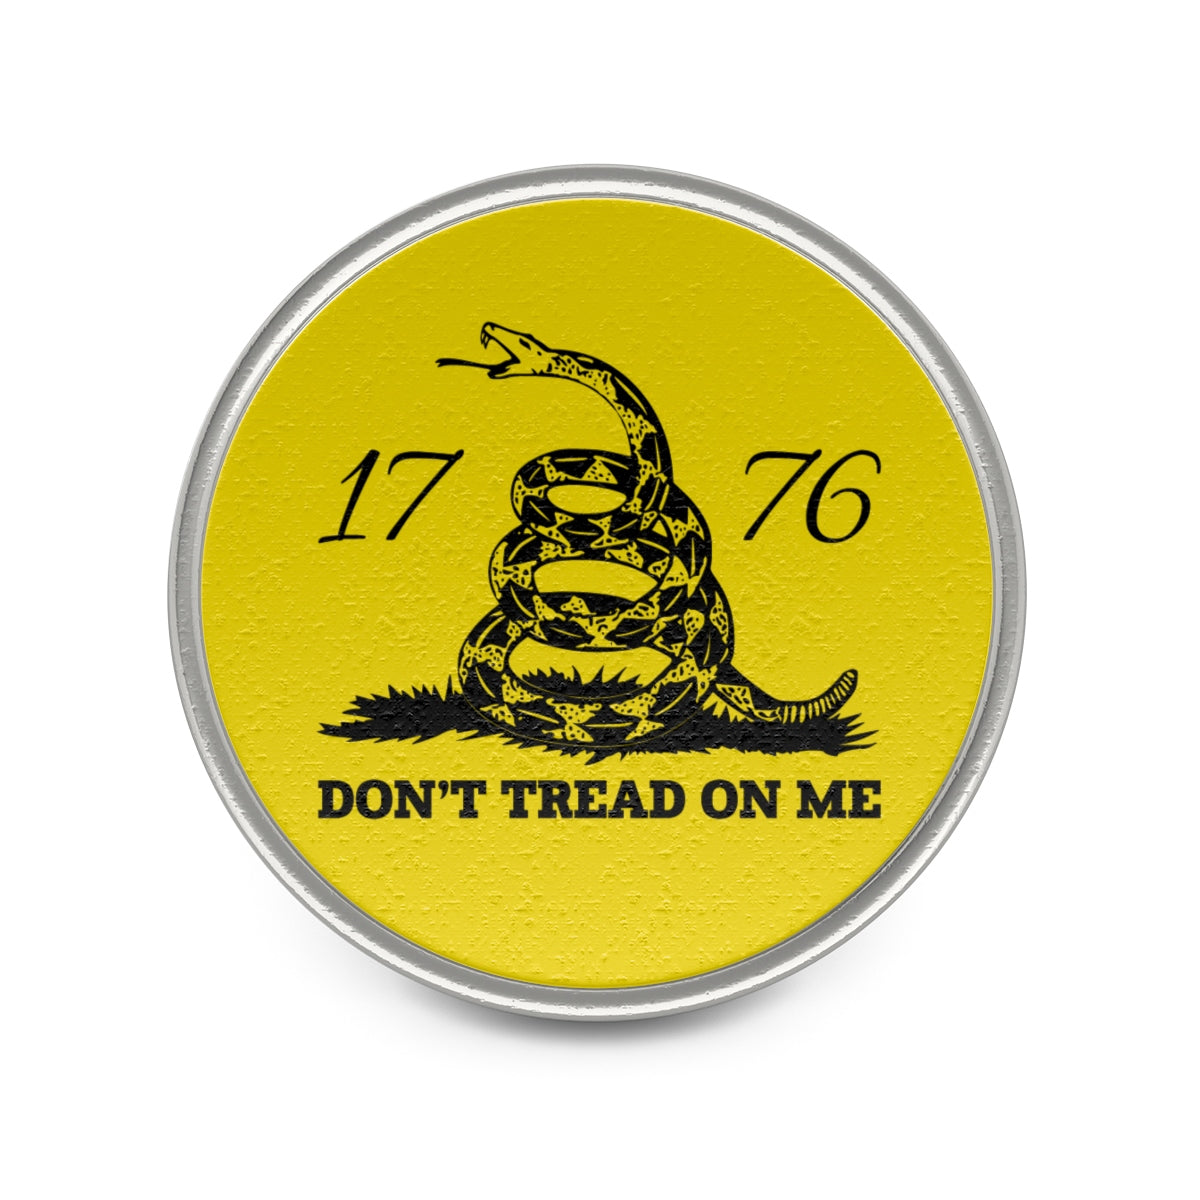 Don't Tread on Me Metal Pin